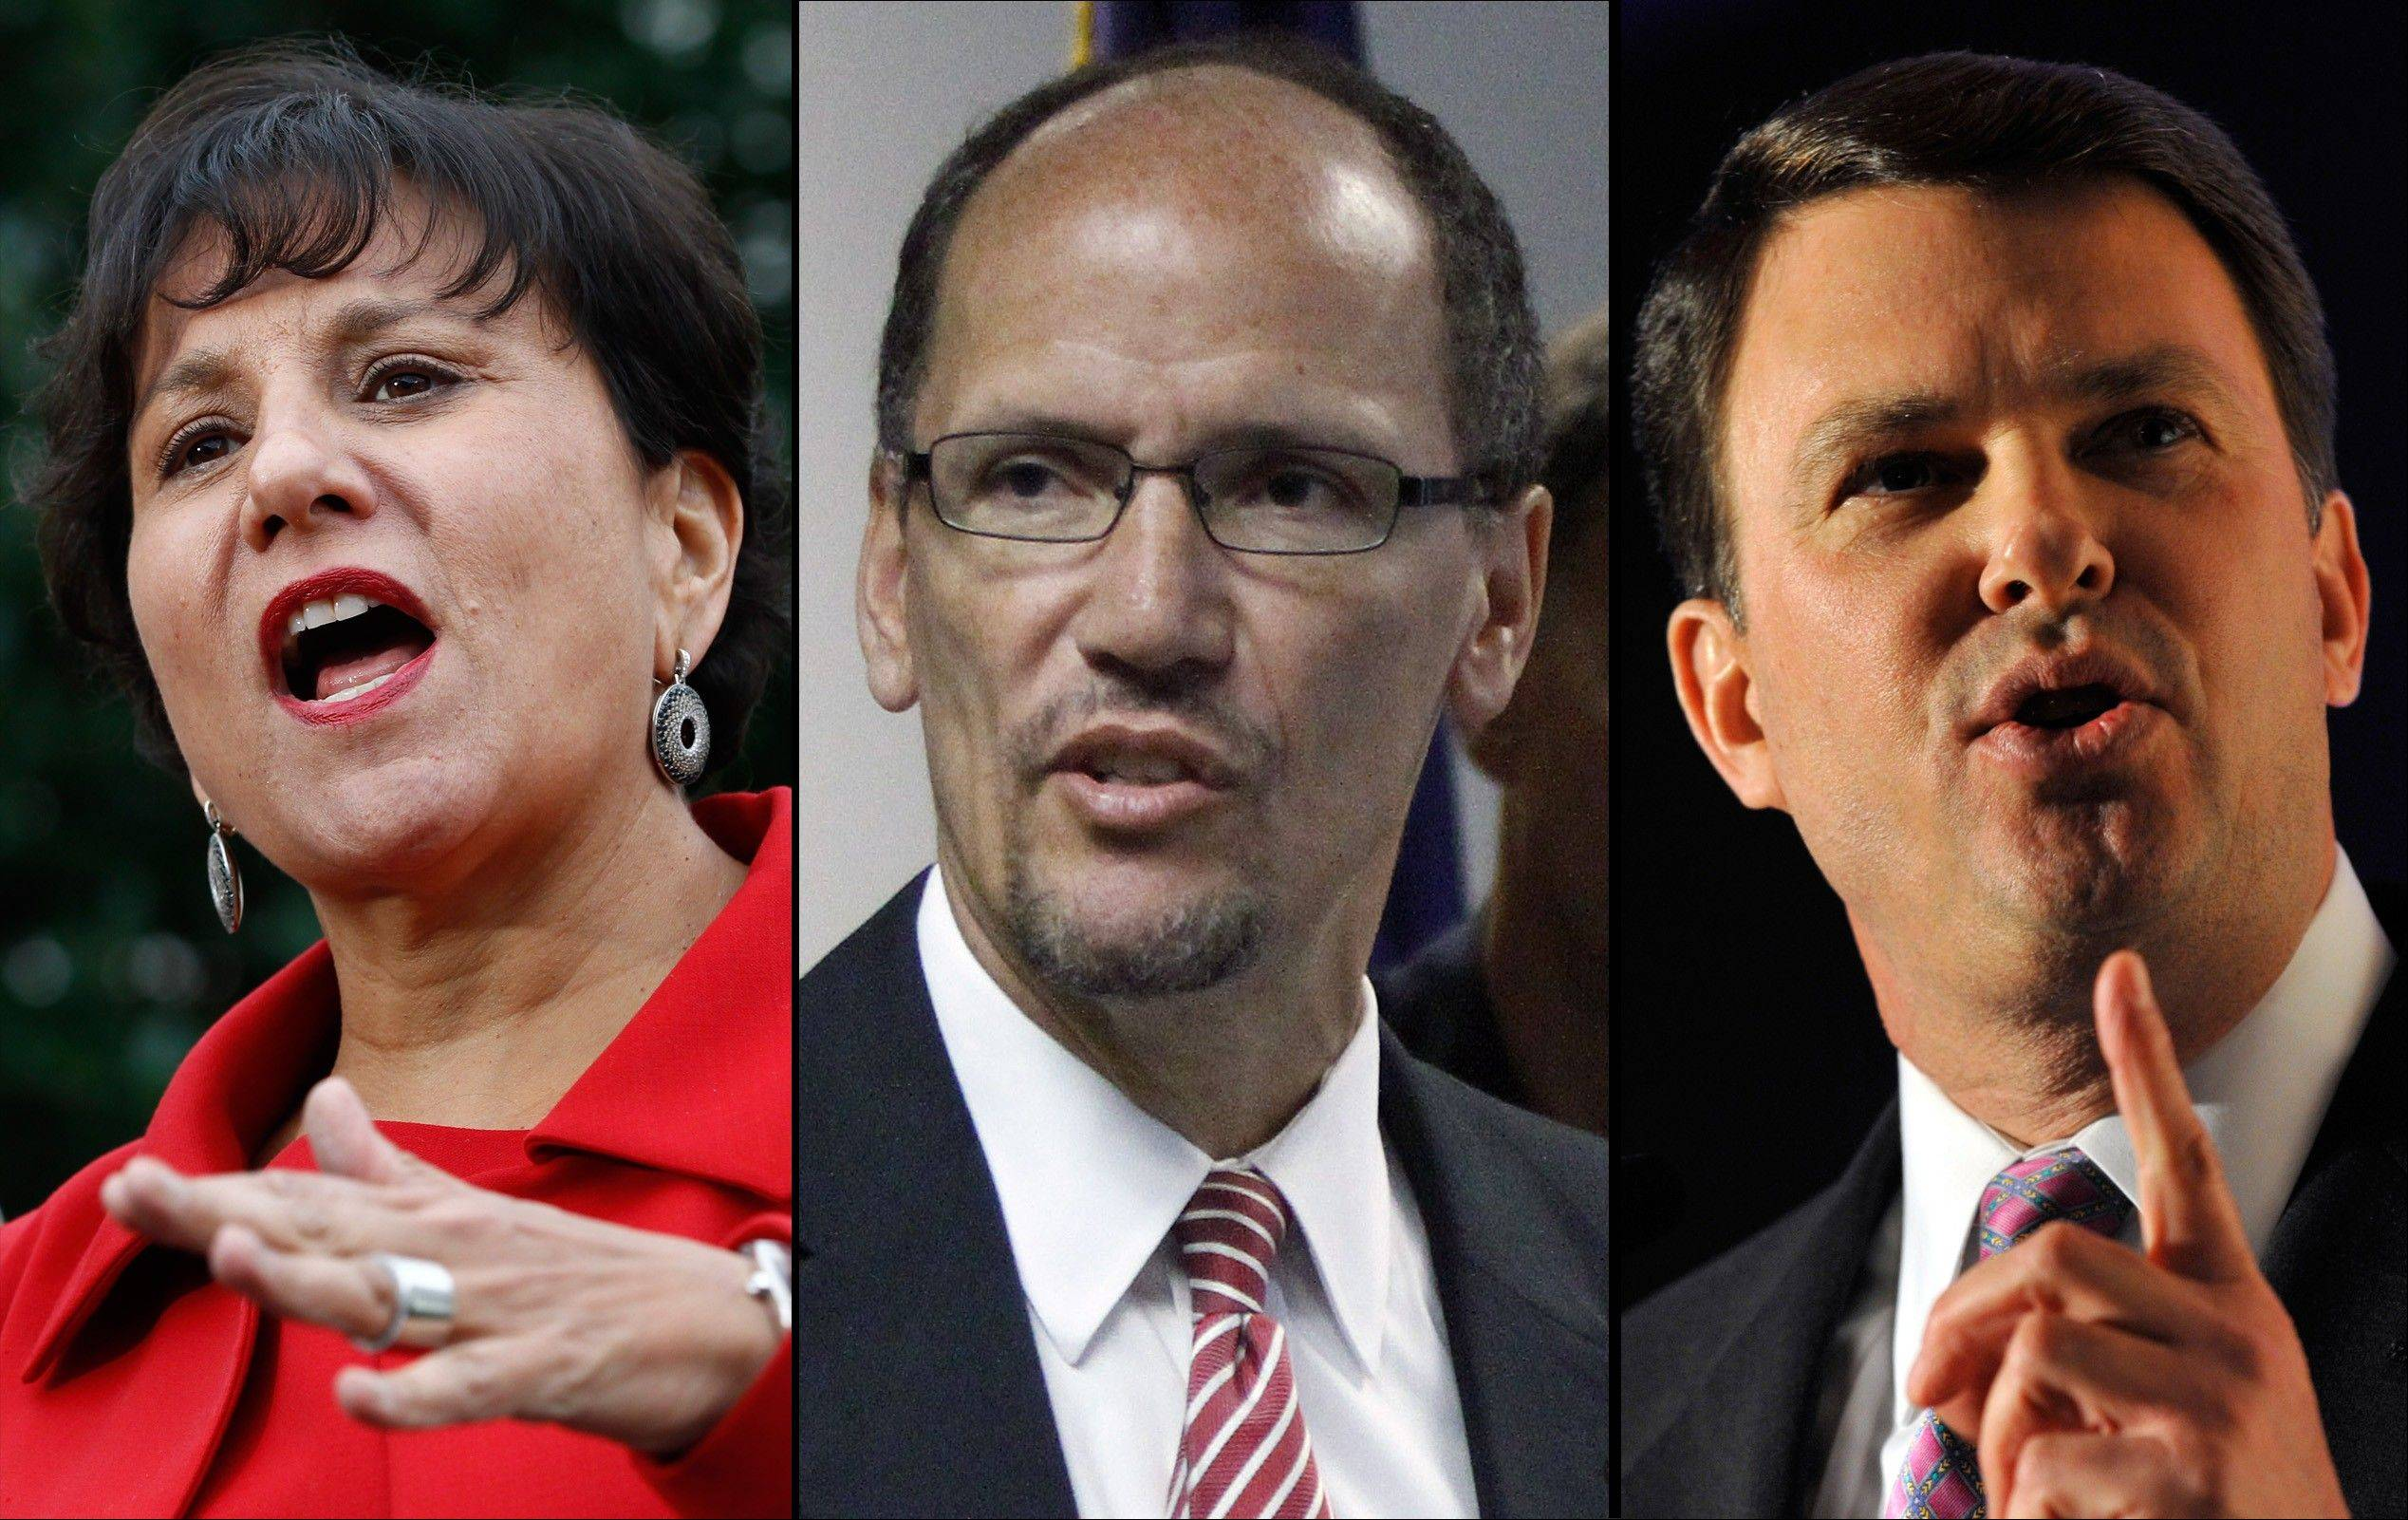 This combination of file photos shows from left: Penny Pritzker, a long-time Obama ally and big-money fundraiser from Chicago; Tom Perez, the assistant U.S. attorney general for civil rights and former secretary of Maryland�s Department of Labor, Licensing and Regulation; and John Berry, the current director of the U.S. Office of Personnel Management and a former senior official at the Interior Department. He is the highest ranking openly gay official in the government. The three have been speculated as potential replacements for cabinet positions in the Obama administration. Obama is said to be looking at women, Latinos and openly gay candidates for top slots at the departments of Commerce, Labor and Interior, and for his own White House budget office.